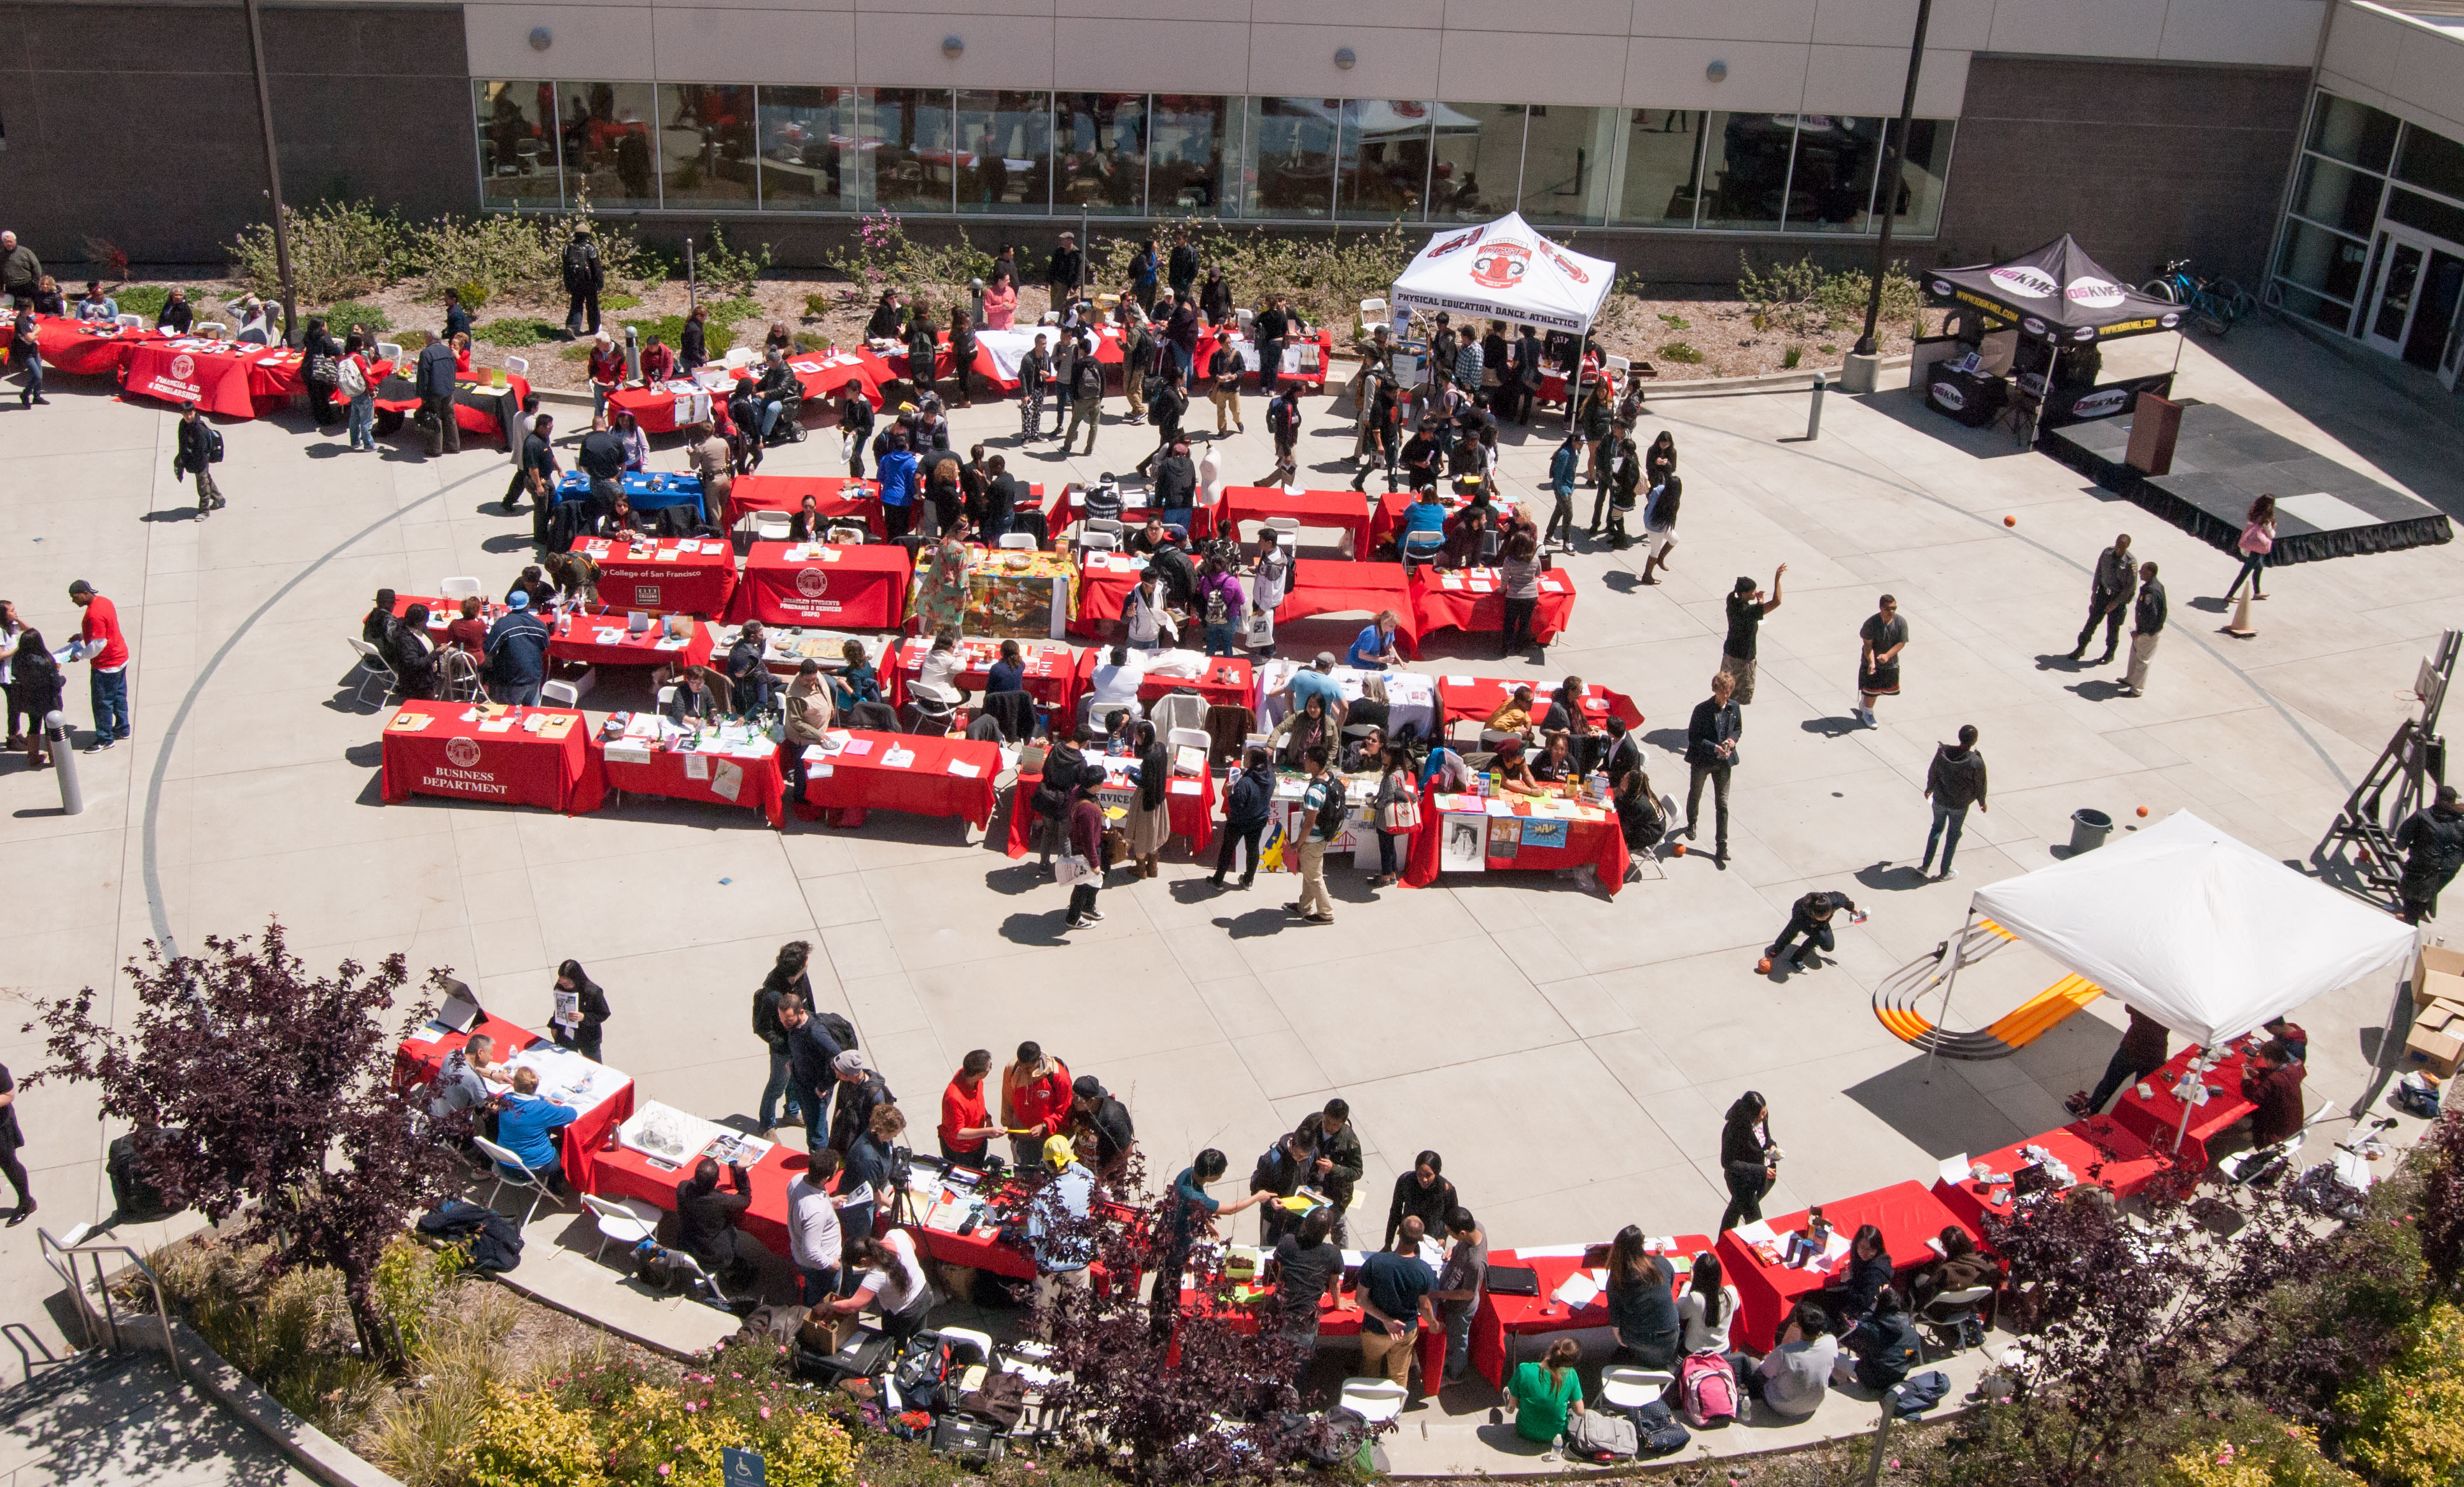 High school students from SFUSD schools participate in Frisco Day at the Amphitheater,  Ocean Campus on Friday, April 24.  (Photo by Franchon Smith)